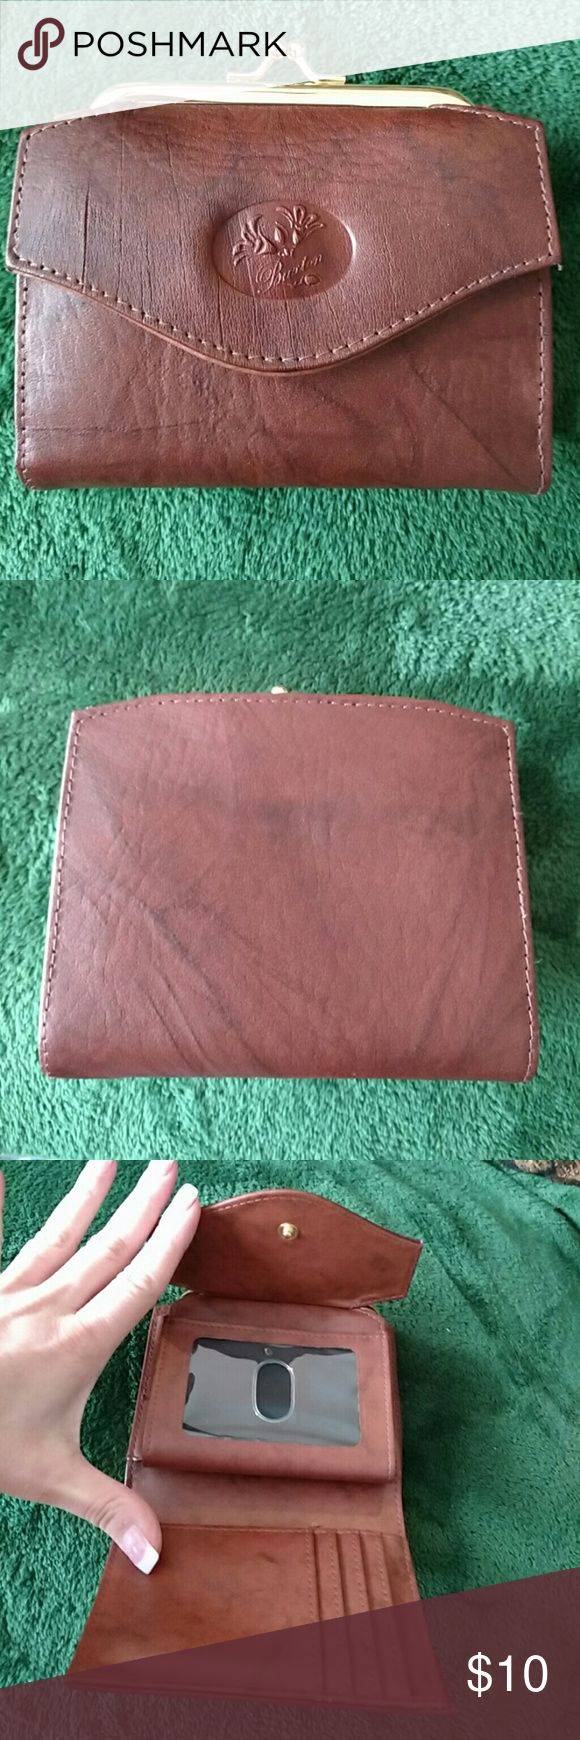 Buxton wallet Used once! Pristine condition! Genuine leather brown wallet! Buxton Bags Wallets